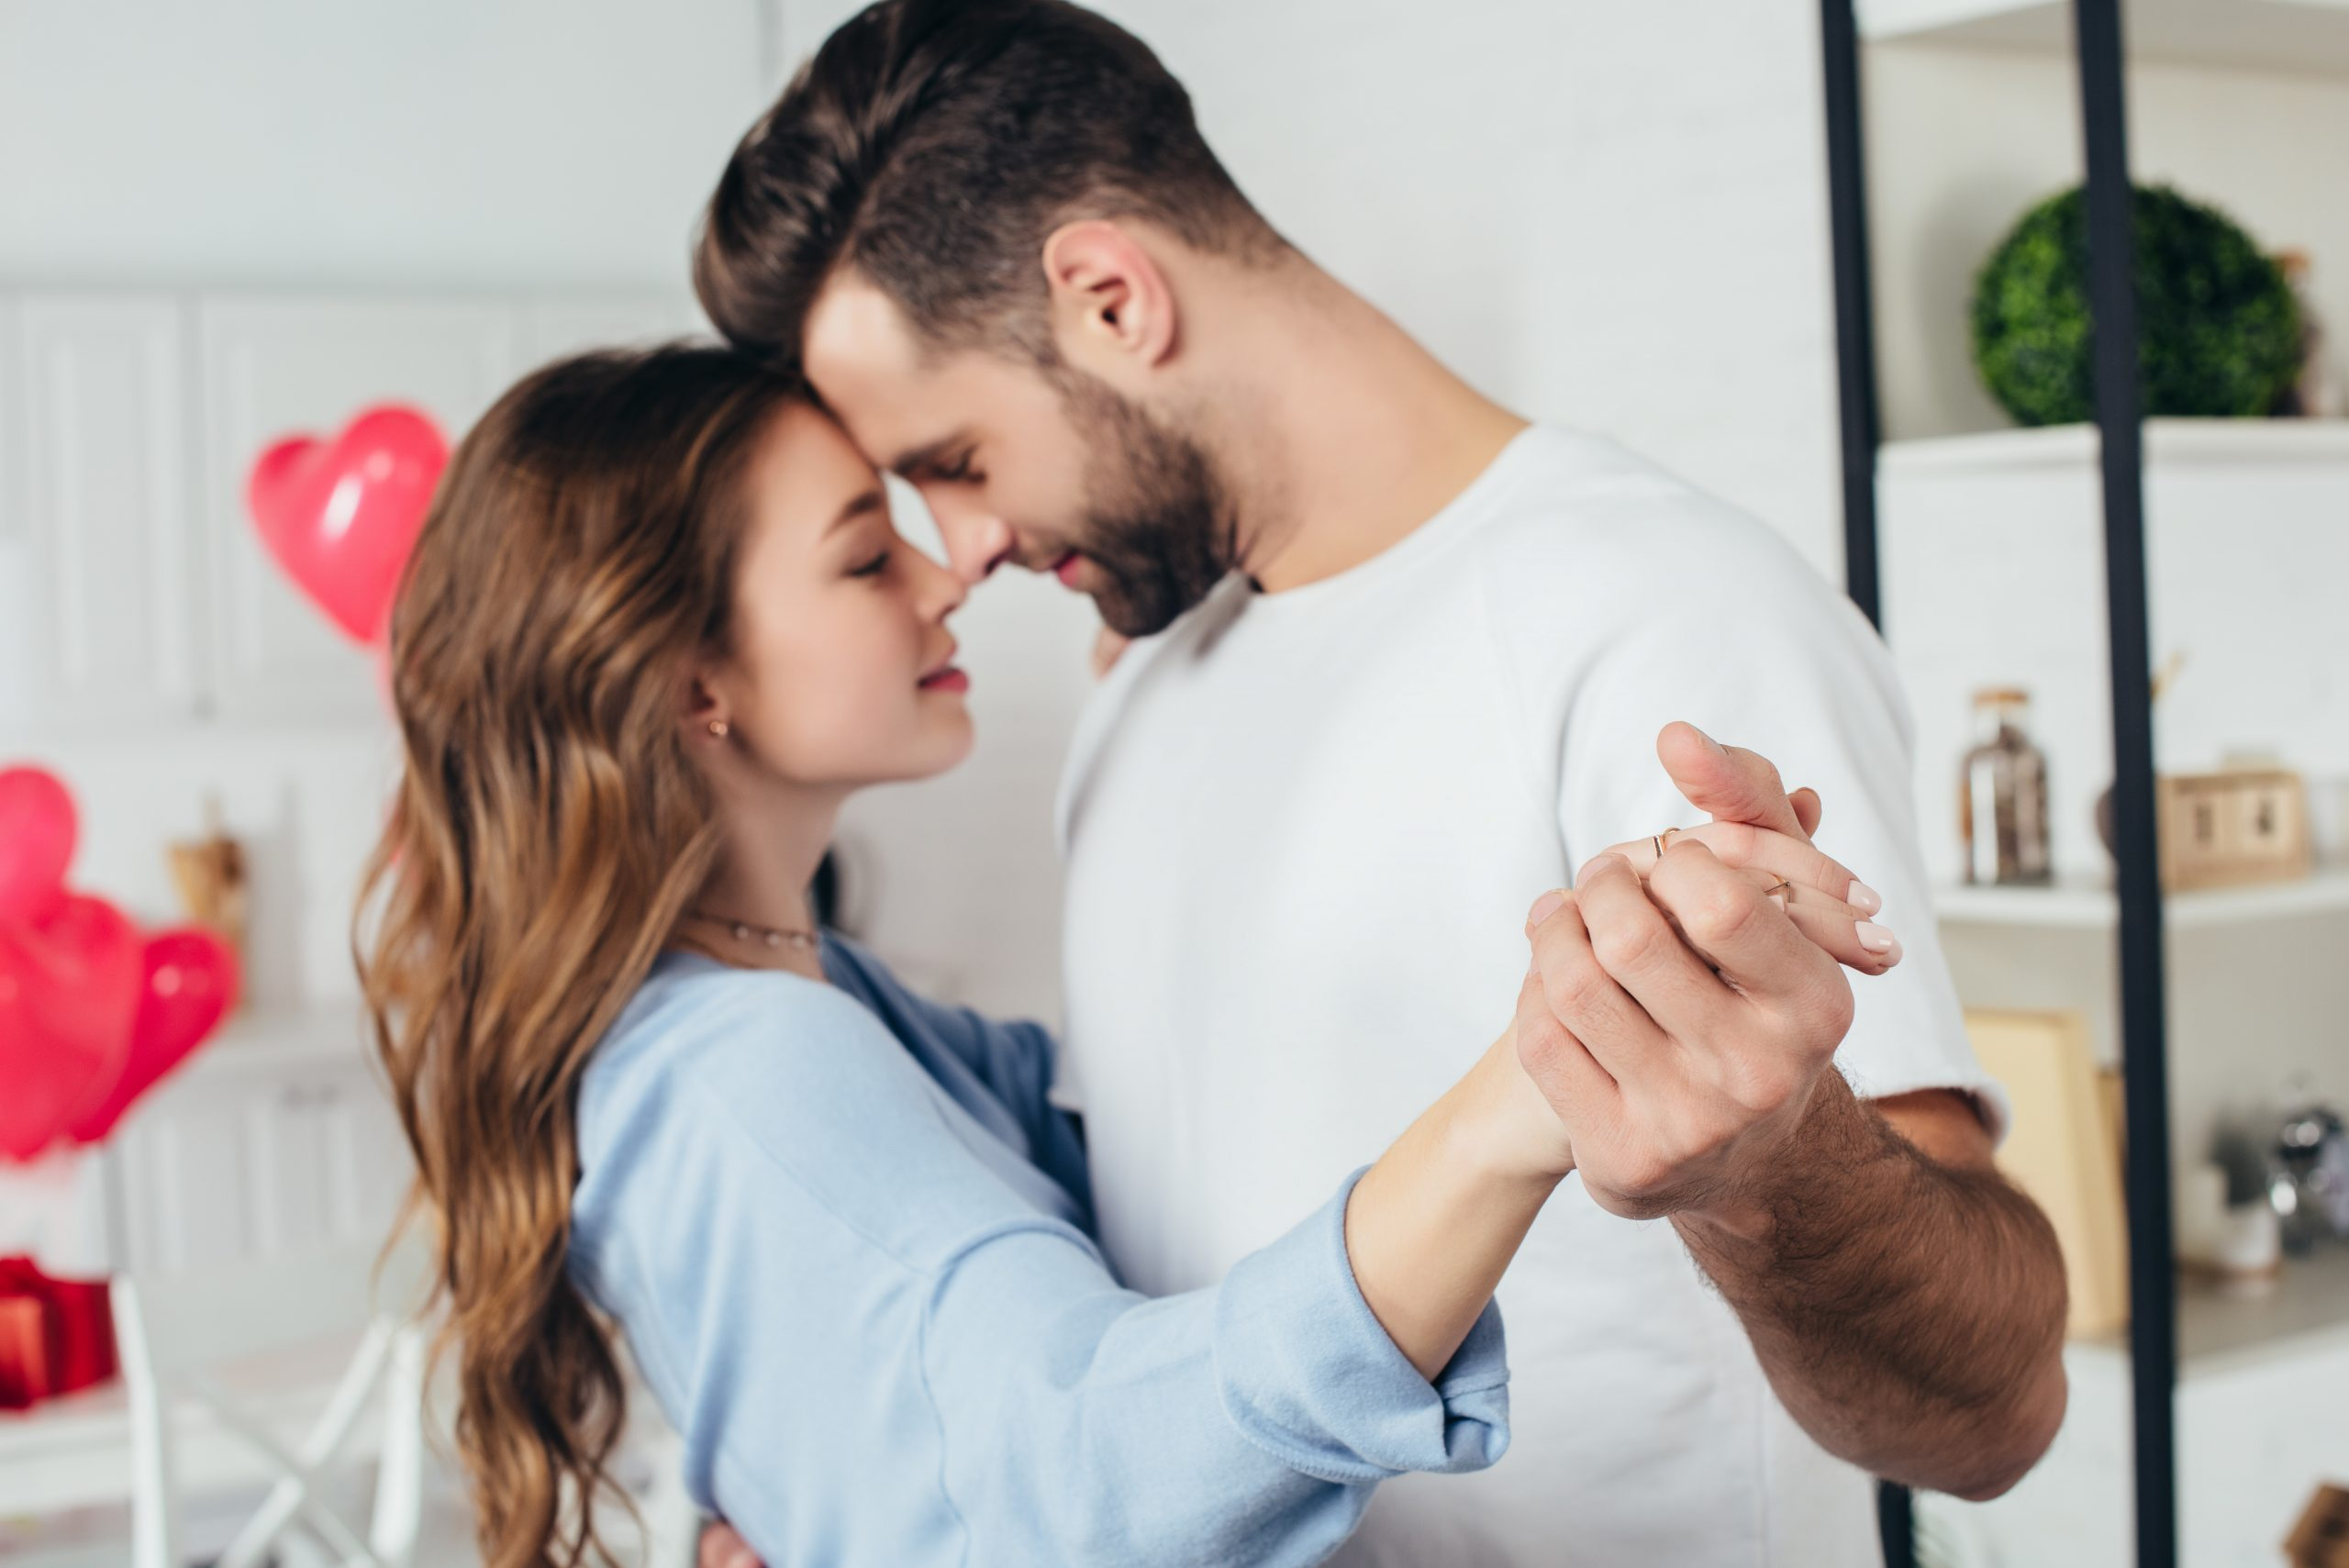 couple slow dancing together at home